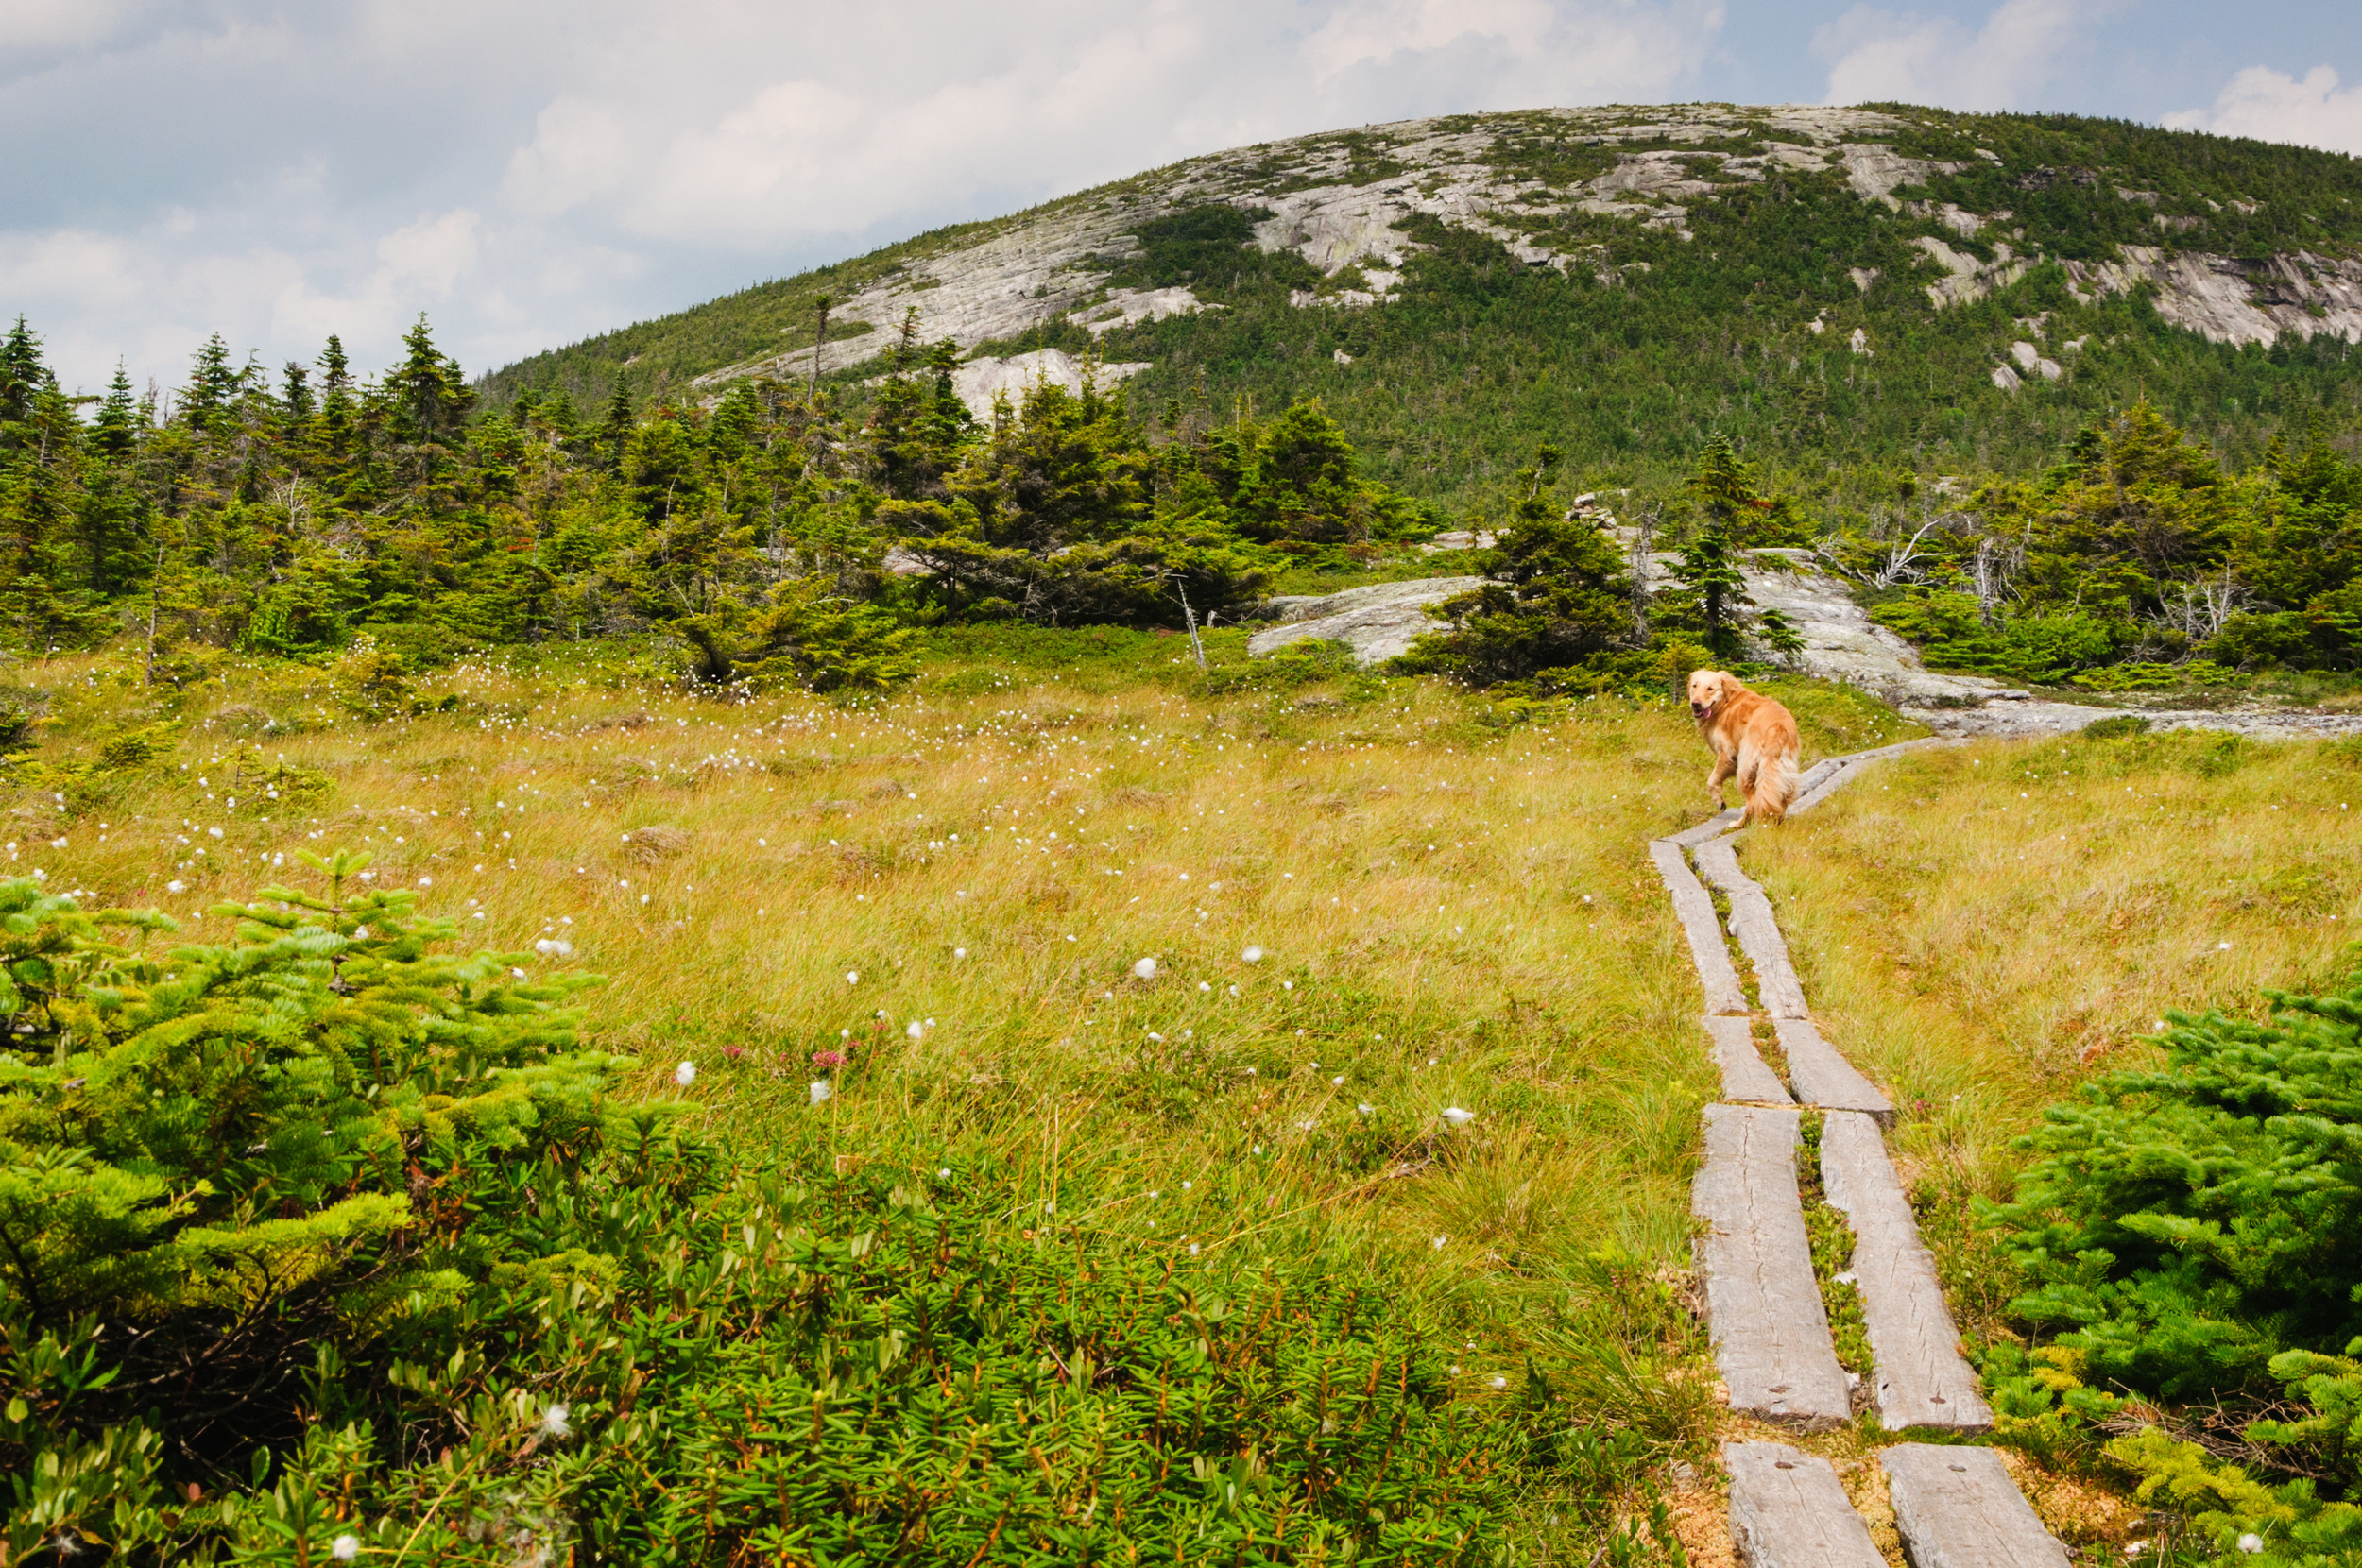 Hiking along the a section of the Appalachian Trail in Maine, USA.